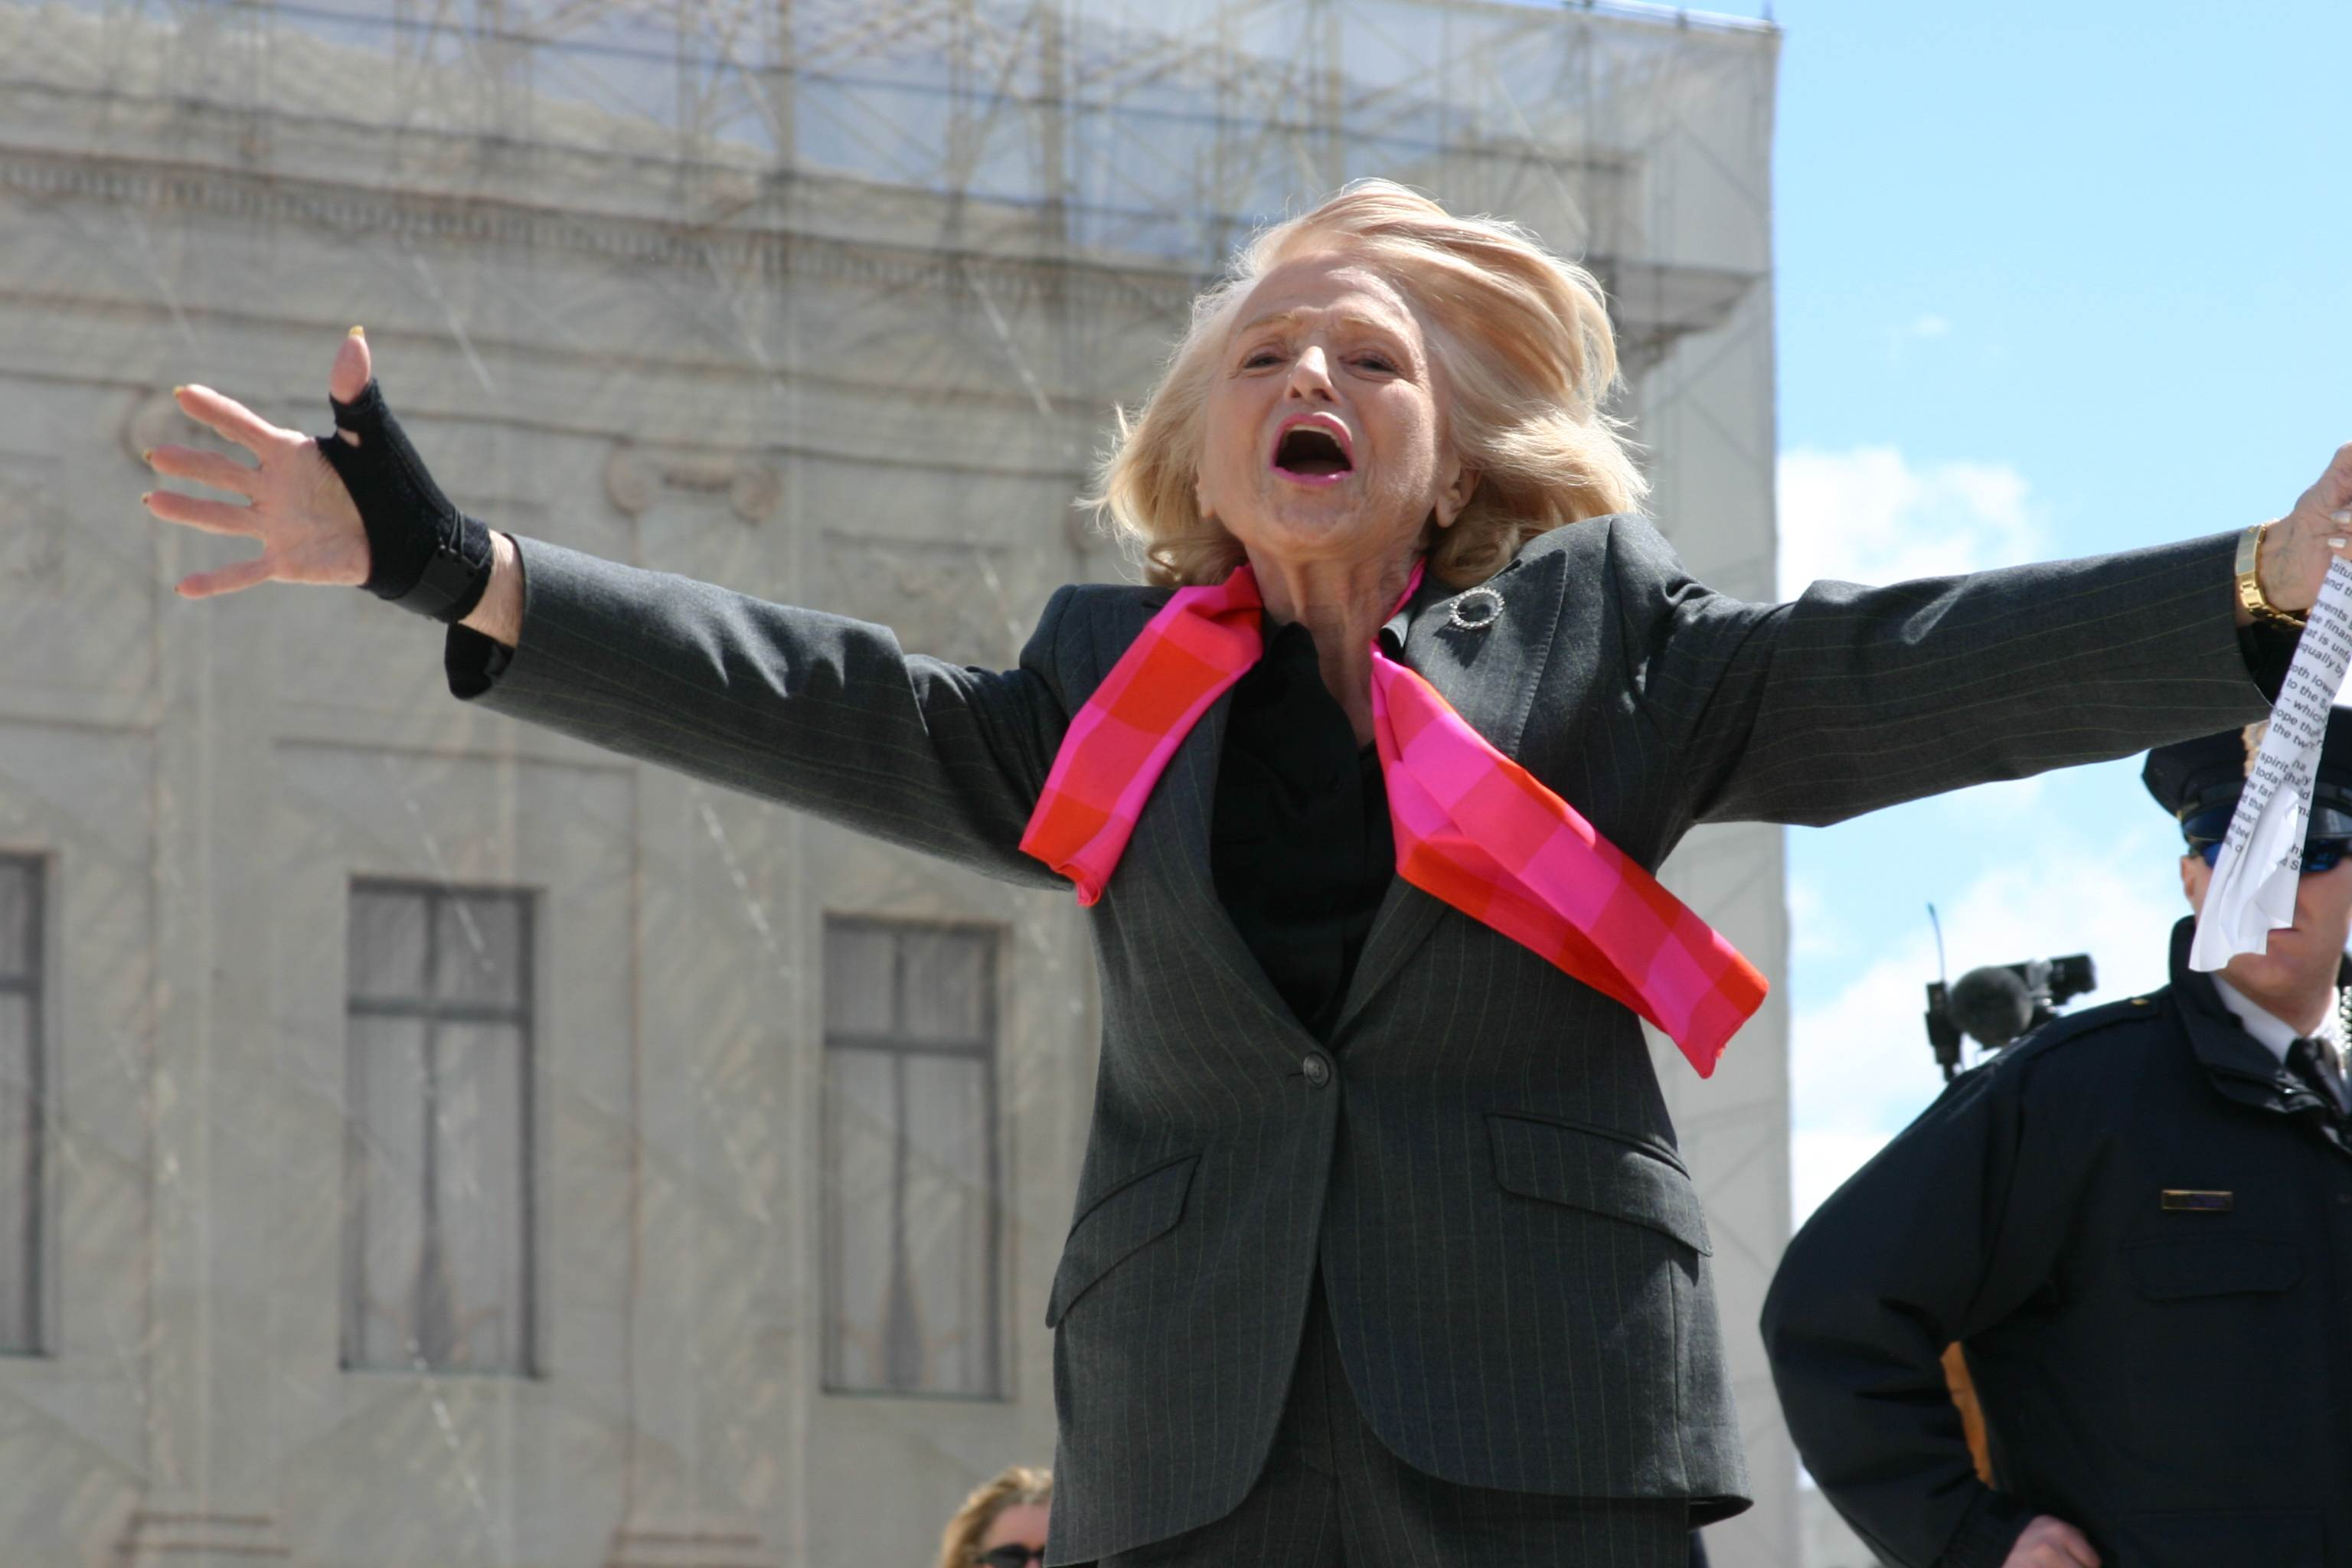 Edie Windsor's love story to her late wife Thea Spyer was at the heart of the legal case that went before the U.S. Supreme Court to strike down DOMA in 2013.